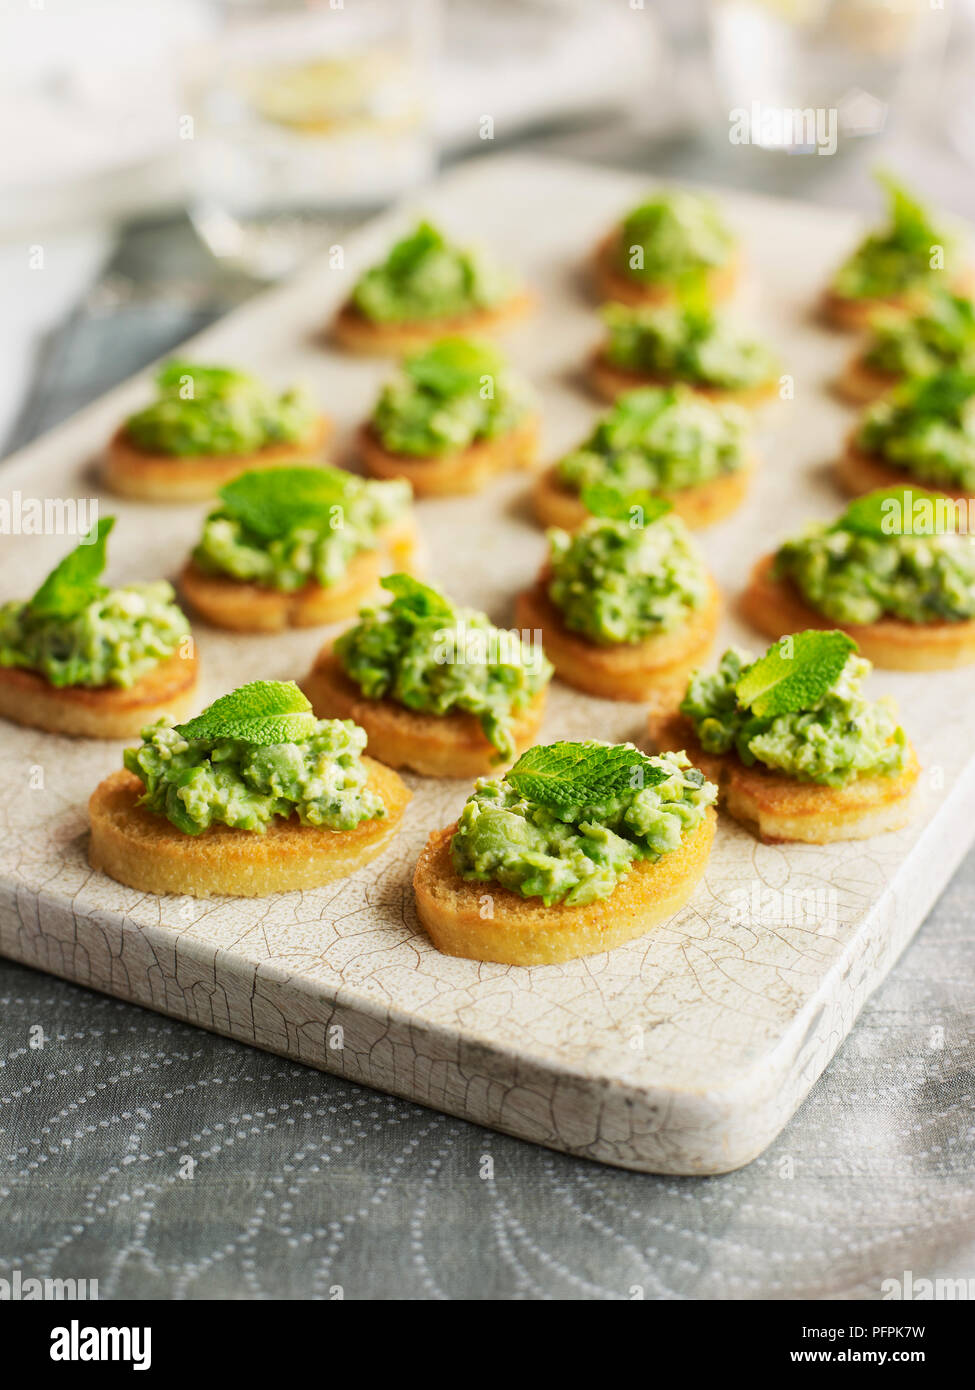 Minted crushed pea and lettuce crostini garnished with mint sprigs - Stock Image